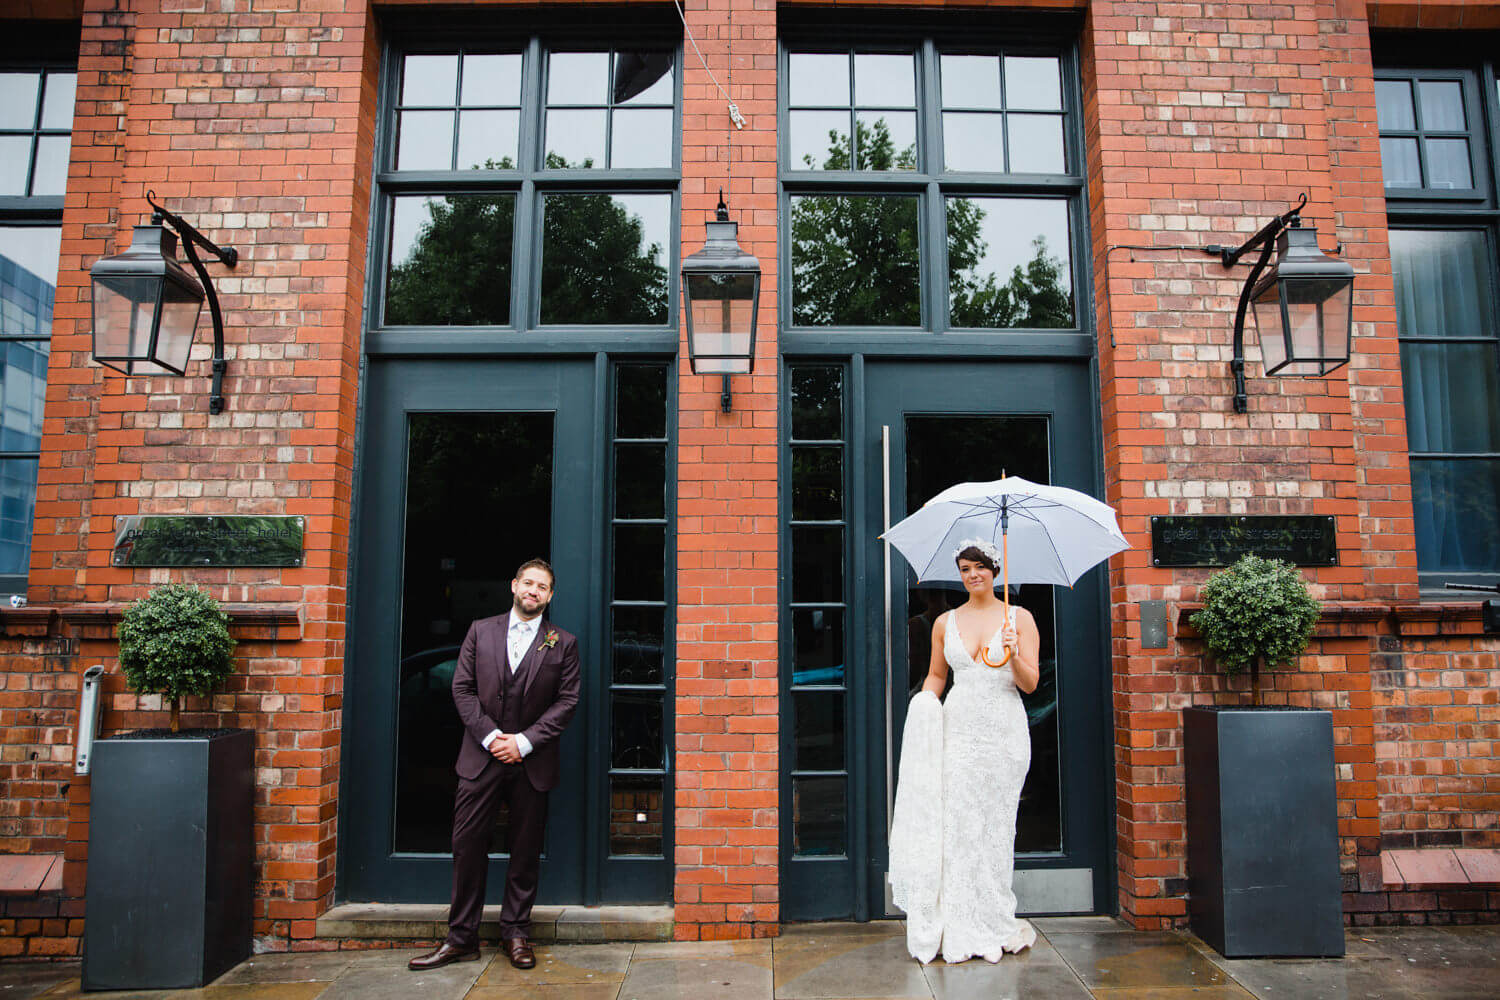 bride and groom stood in doorway for posed portrait at great john street hotel wedding photography